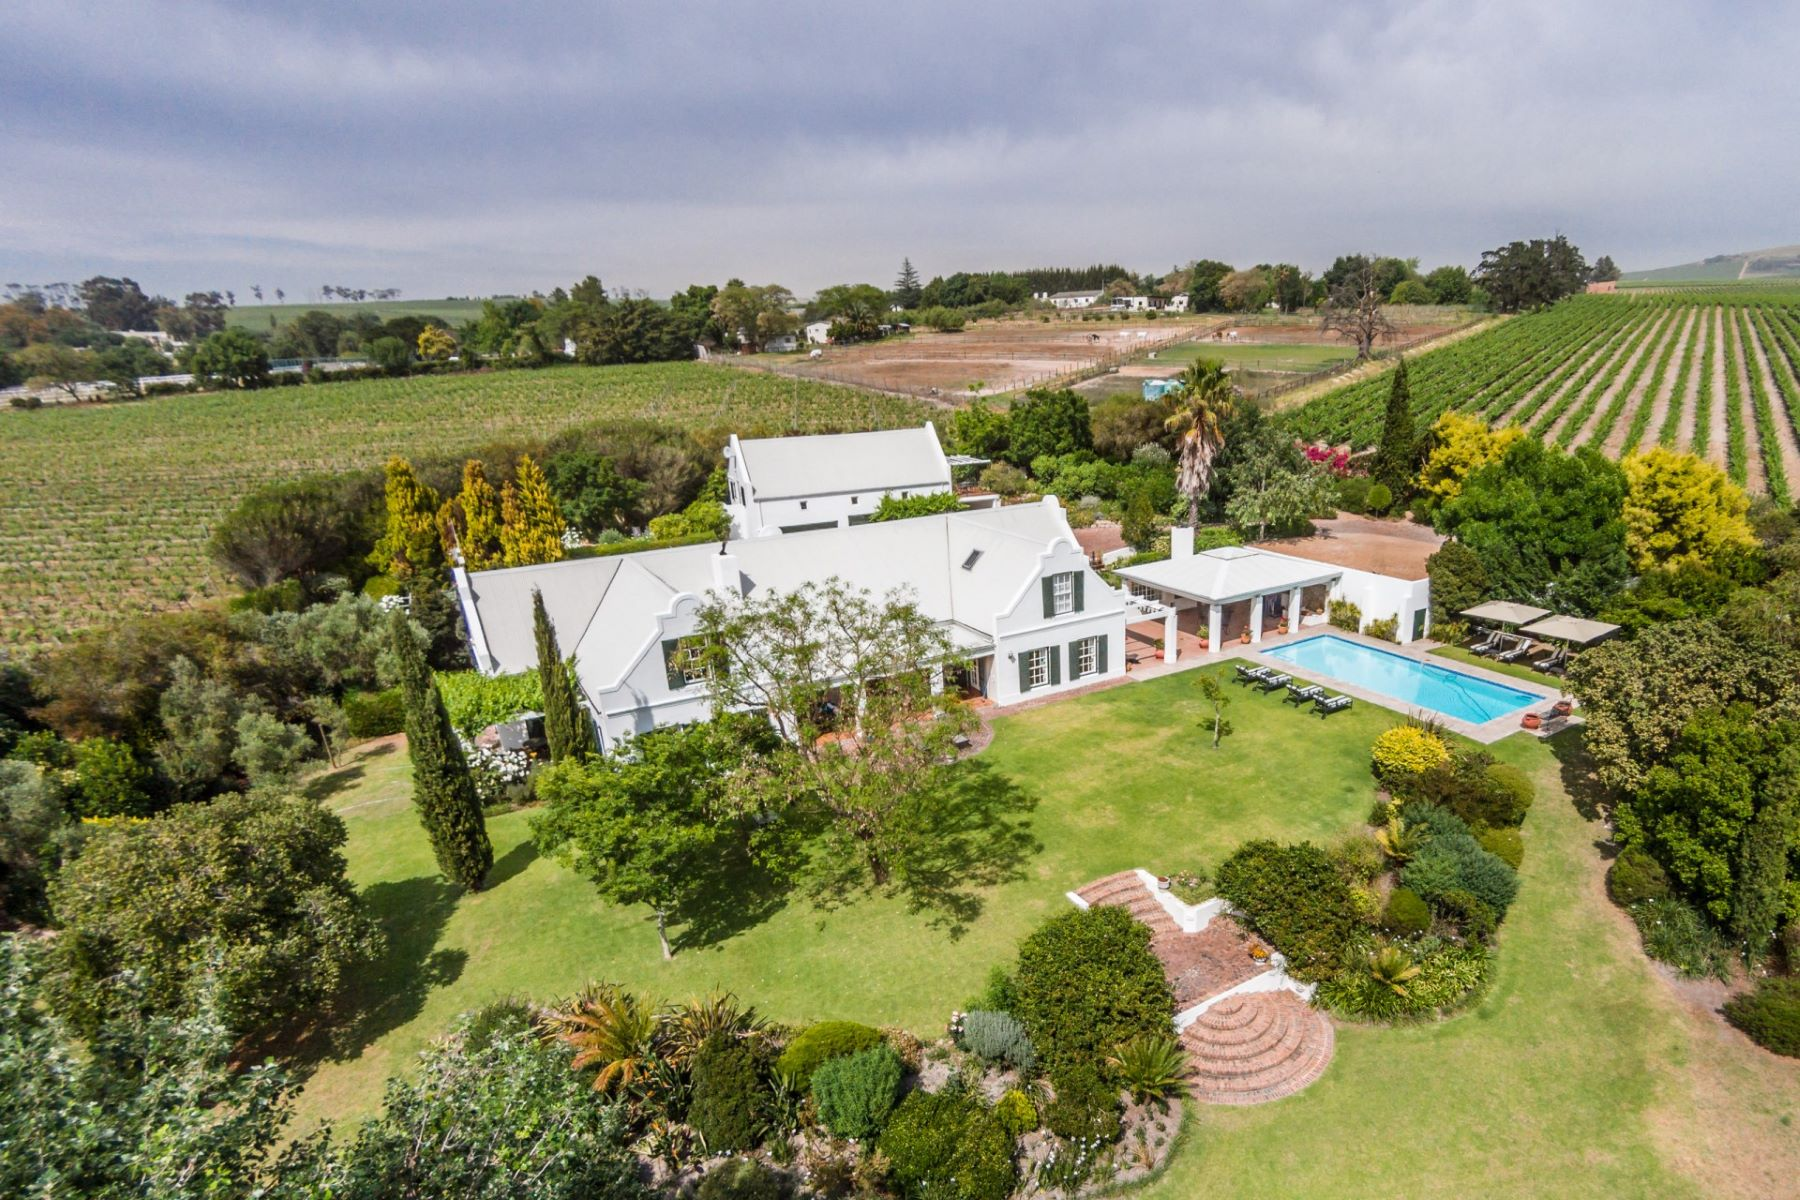 Farm / Ranch / Plantation for Sale at Stellenbosch Stellenbosch, Western Cape, 7600 South Africa